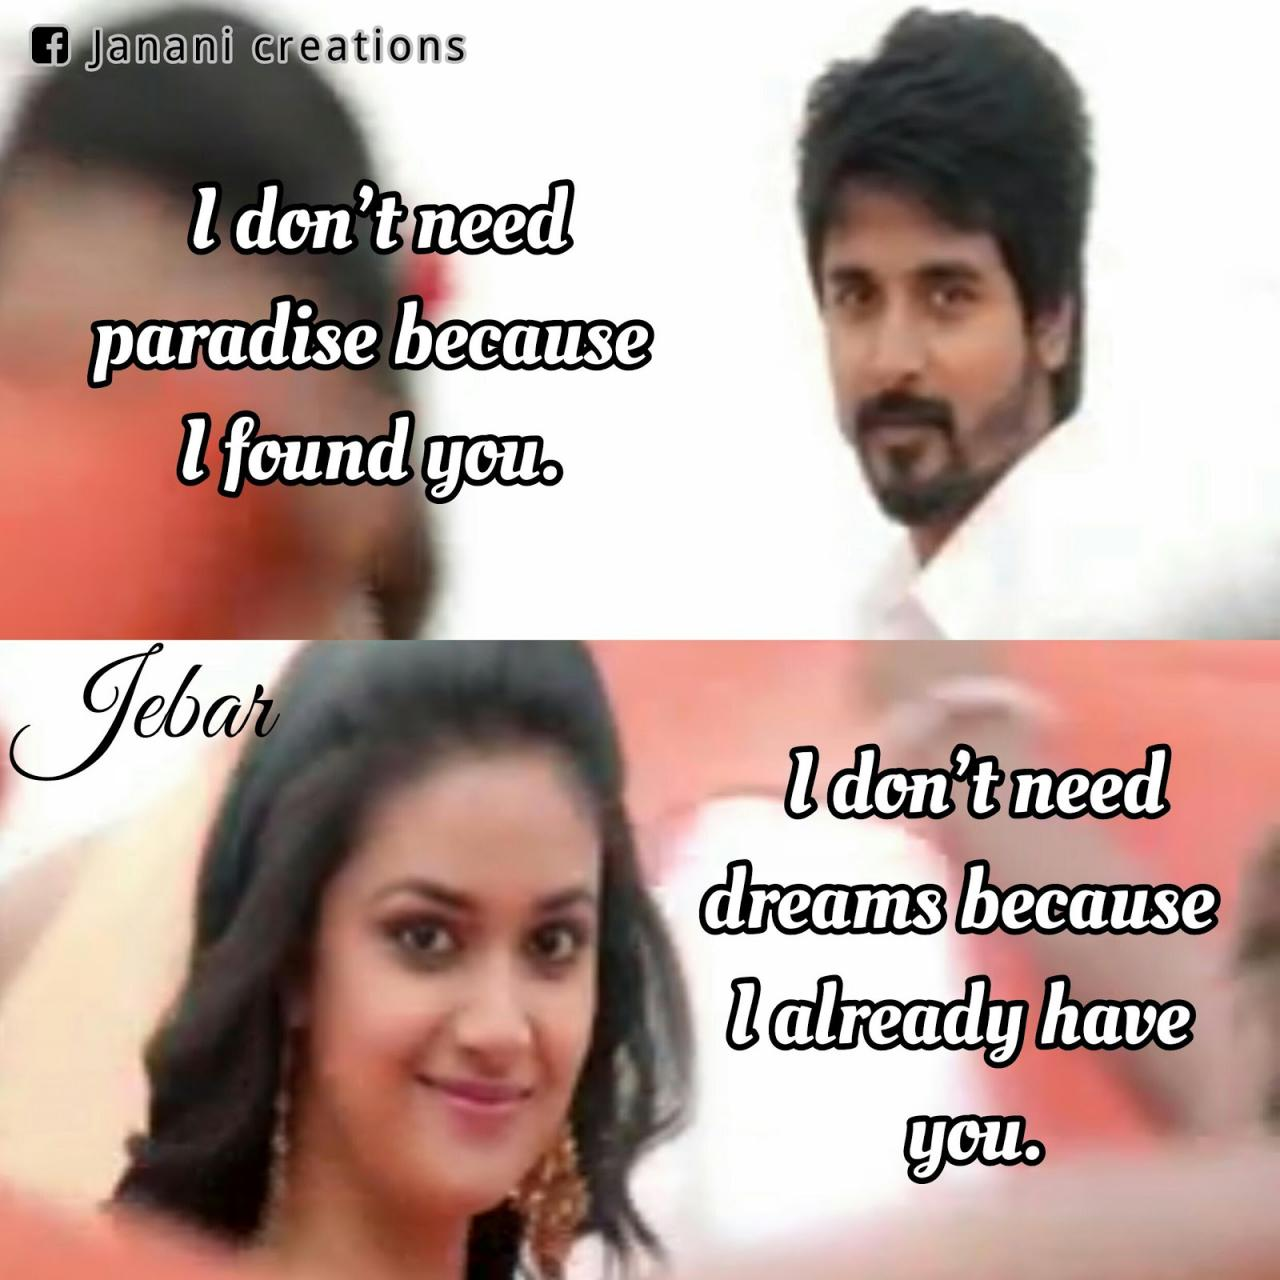 Remo Images With Quotes Love Janani Creations Love Quotes New Quotes Remo